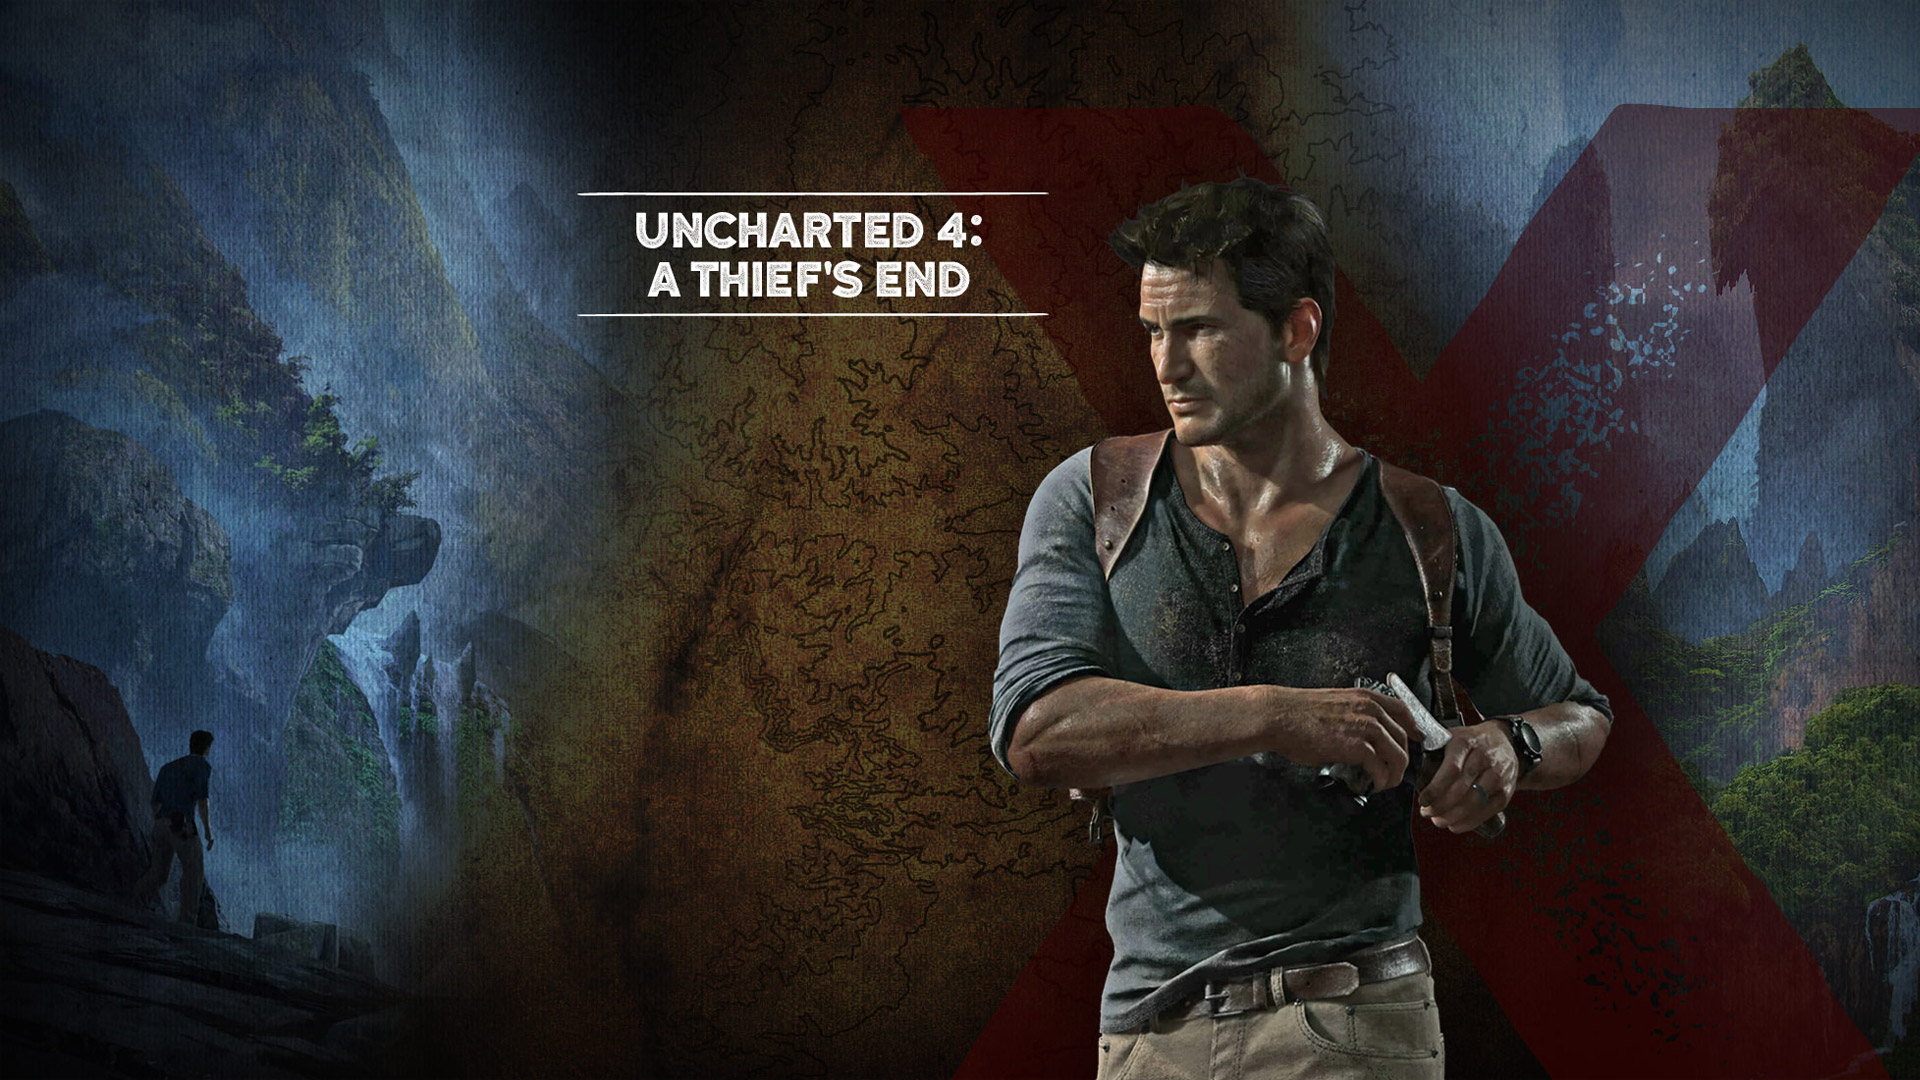 Арт к игре Uncharted 4: A Thief's End